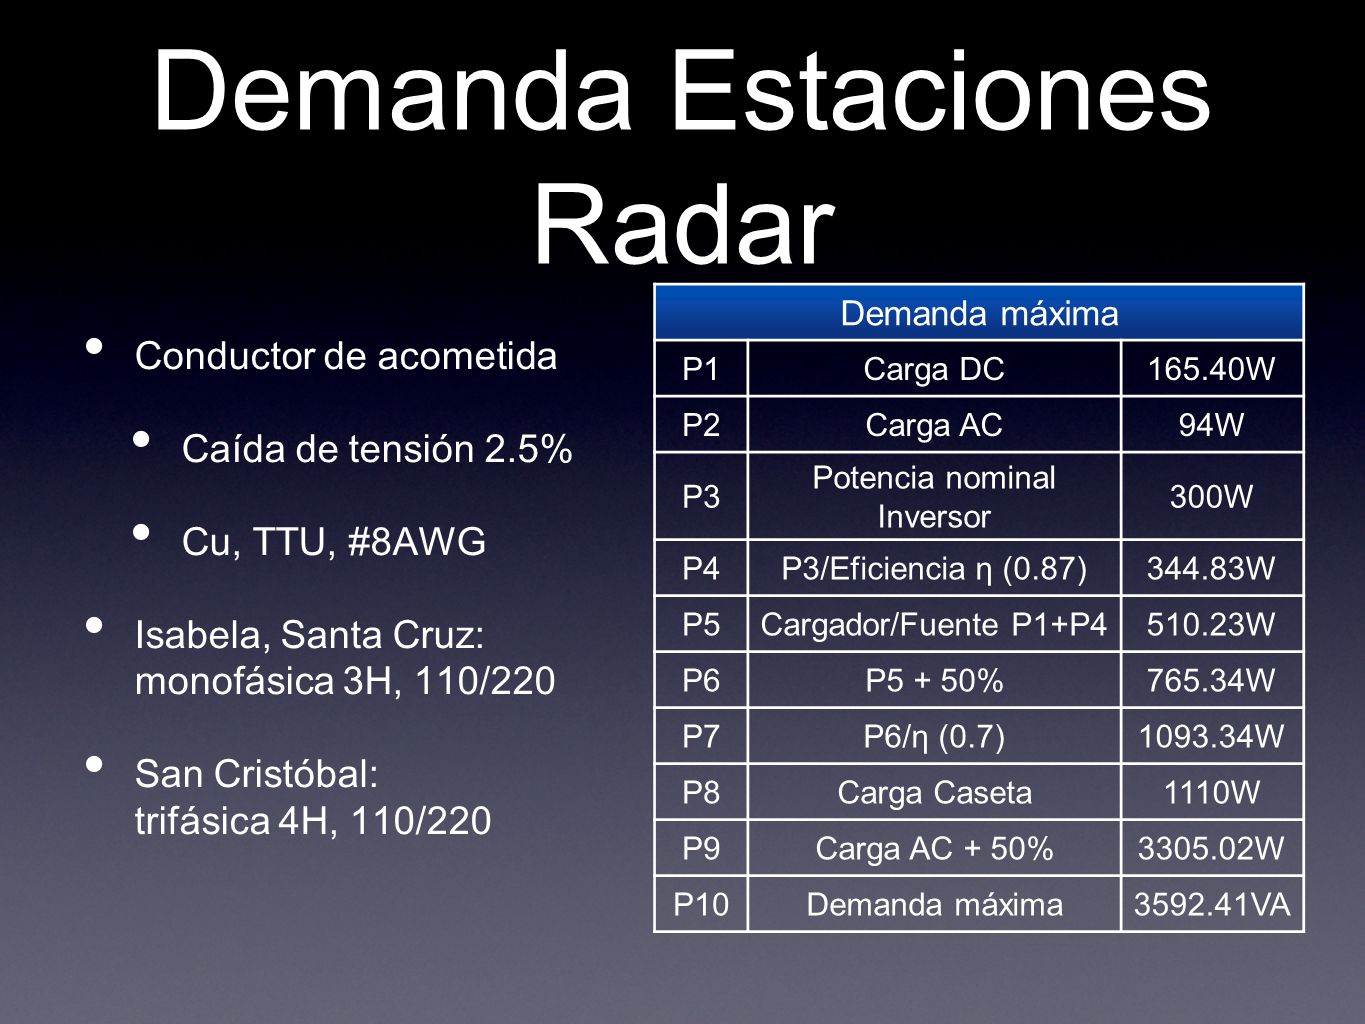 Demanda Estaciones Radar